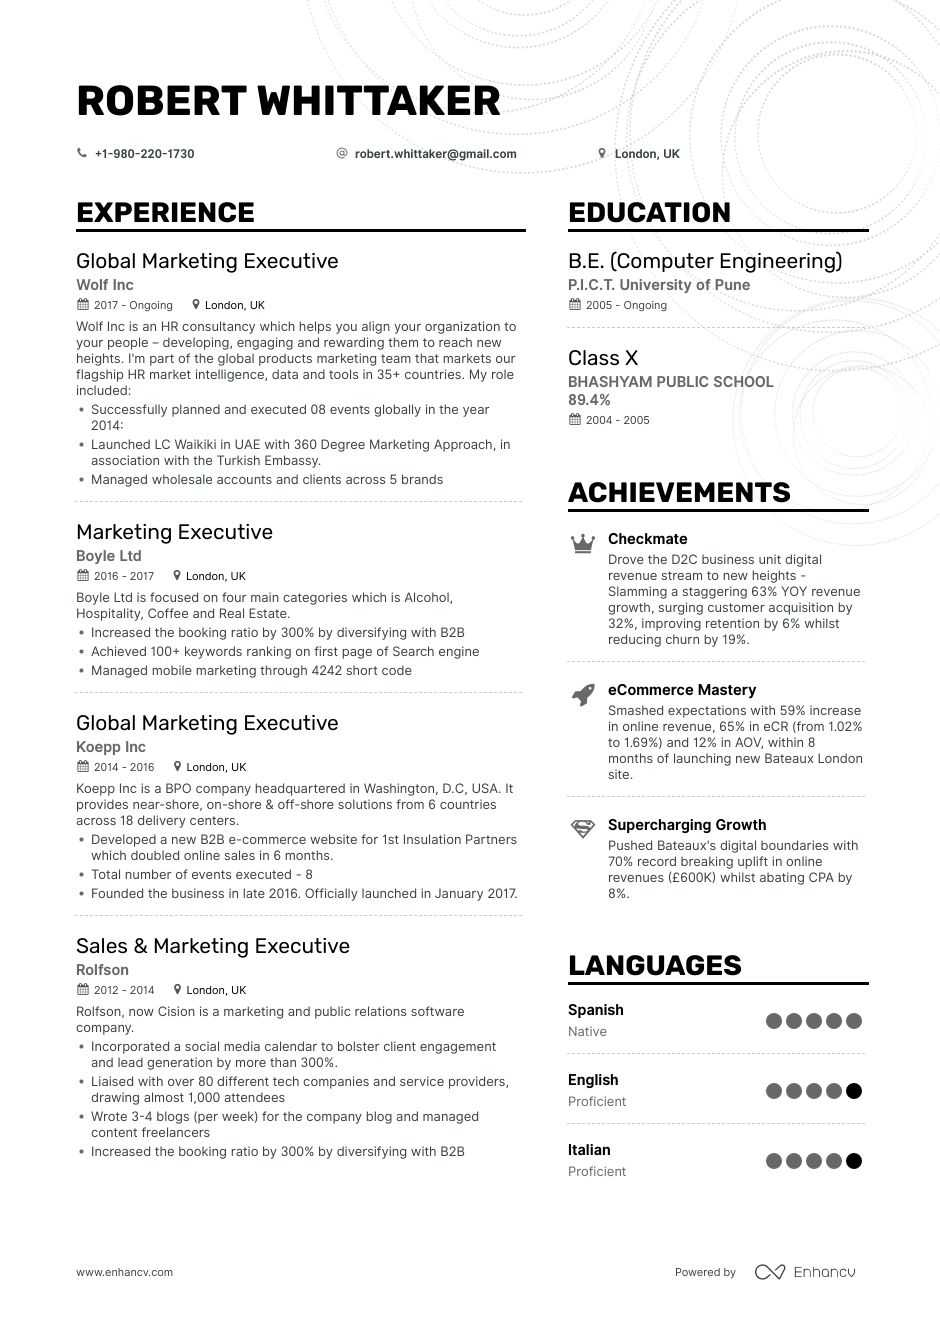 marketing executive resume examples pro tips featured enhancv the victor cheng consulting Resume Marketing Executive Resume